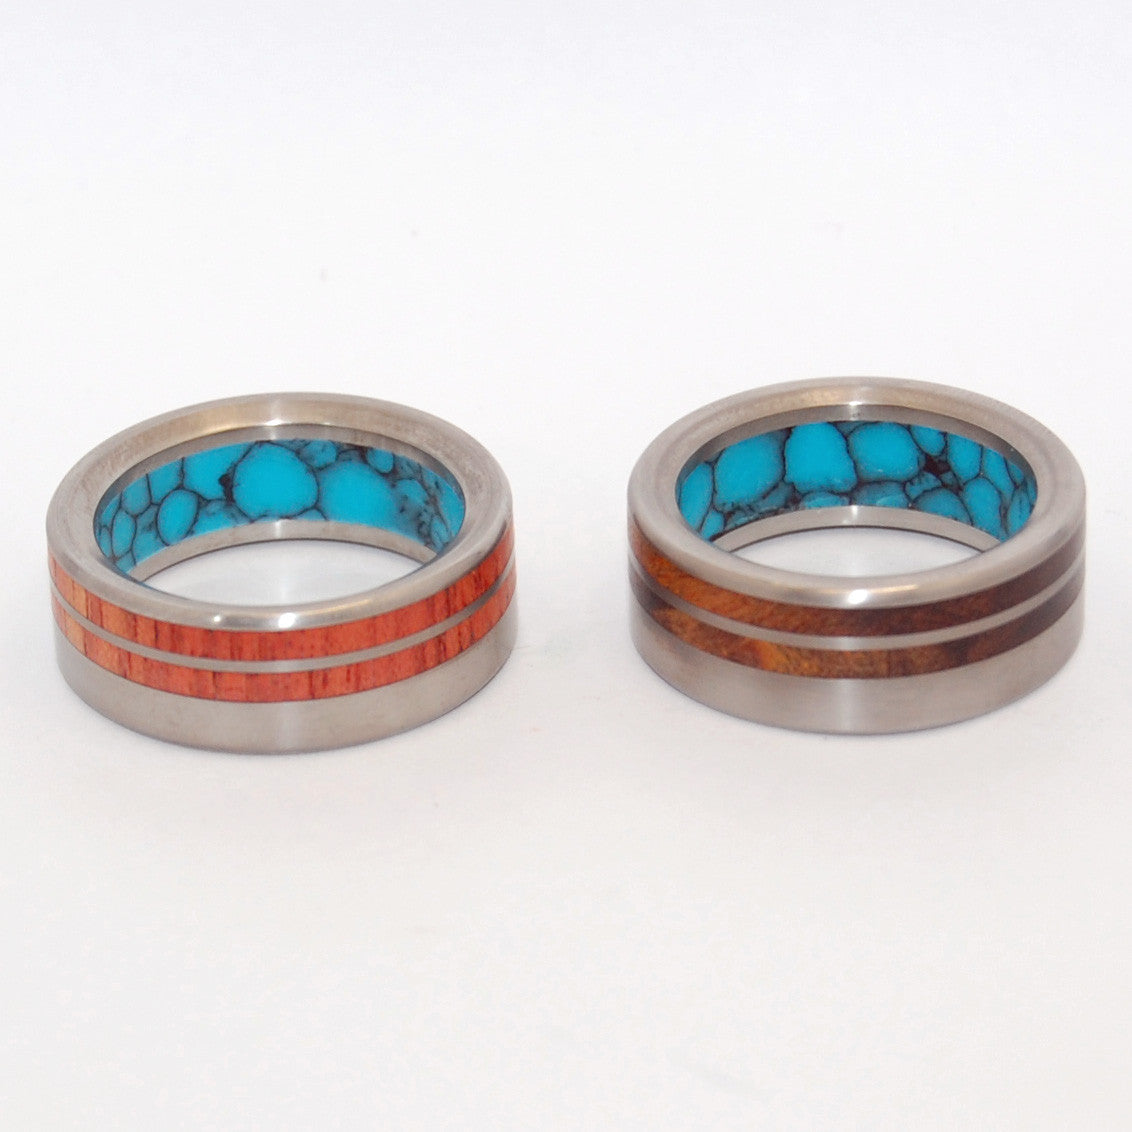 Meant To Be Together | Titanium Wedding Rings - Minter and Richter Designs